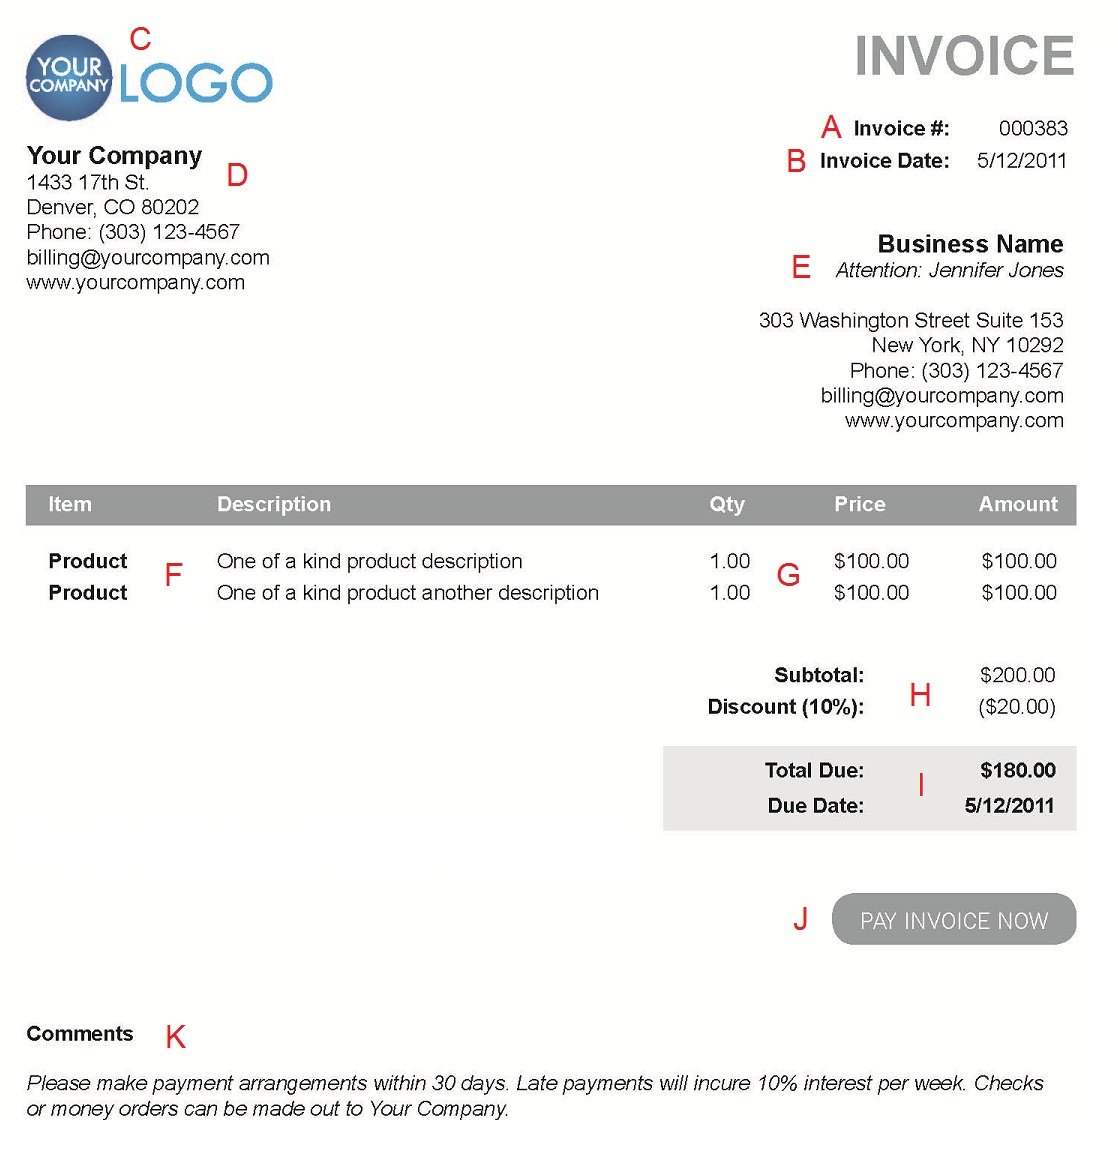 Shopdesignsus  Unique The  Different Sections Of An Electronic Payment Invoice With Magnificent A  With Comely Receipt Printer Paper Size Also Free Receipts Online In Addition Tracking Certified Mail Return Receipt Requested And Service Receipt Template Word As Well As Print Receipt Form Additionally Hand Receipt Holder From Paysimplecom With Shopdesignsus  Magnificent The  Different Sections Of An Electronic Payment Invoice With Comely A  And Unique Receipt Printer Paper Size Also Free Receipts Online In Addition Tracking Certified Mail Return Receipt Requested From Paysimplecom